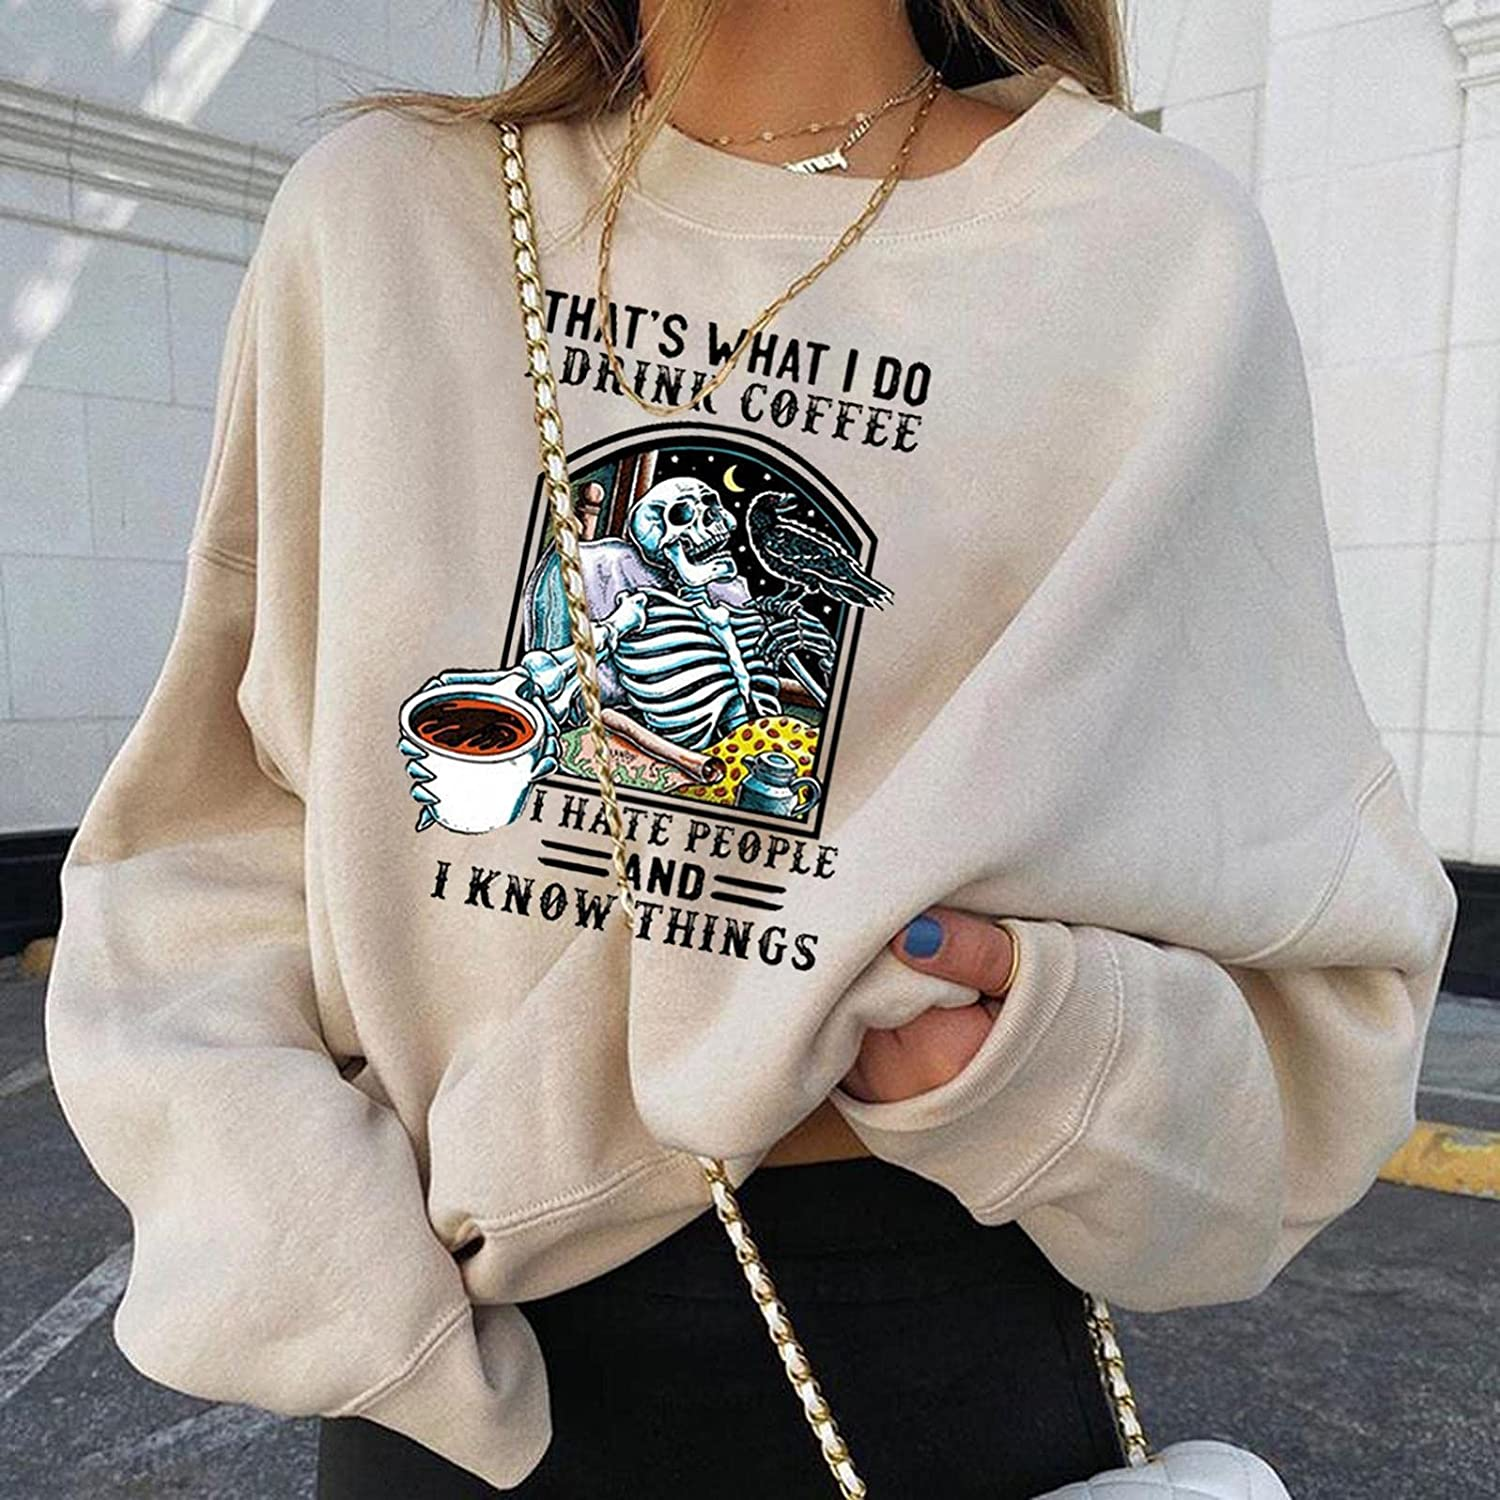 AODONG Halloween Sweatshirts for Women, Womens Plus Size Tops Funny Skeleton Pumpkin Printed Oversized Pullover Shirts